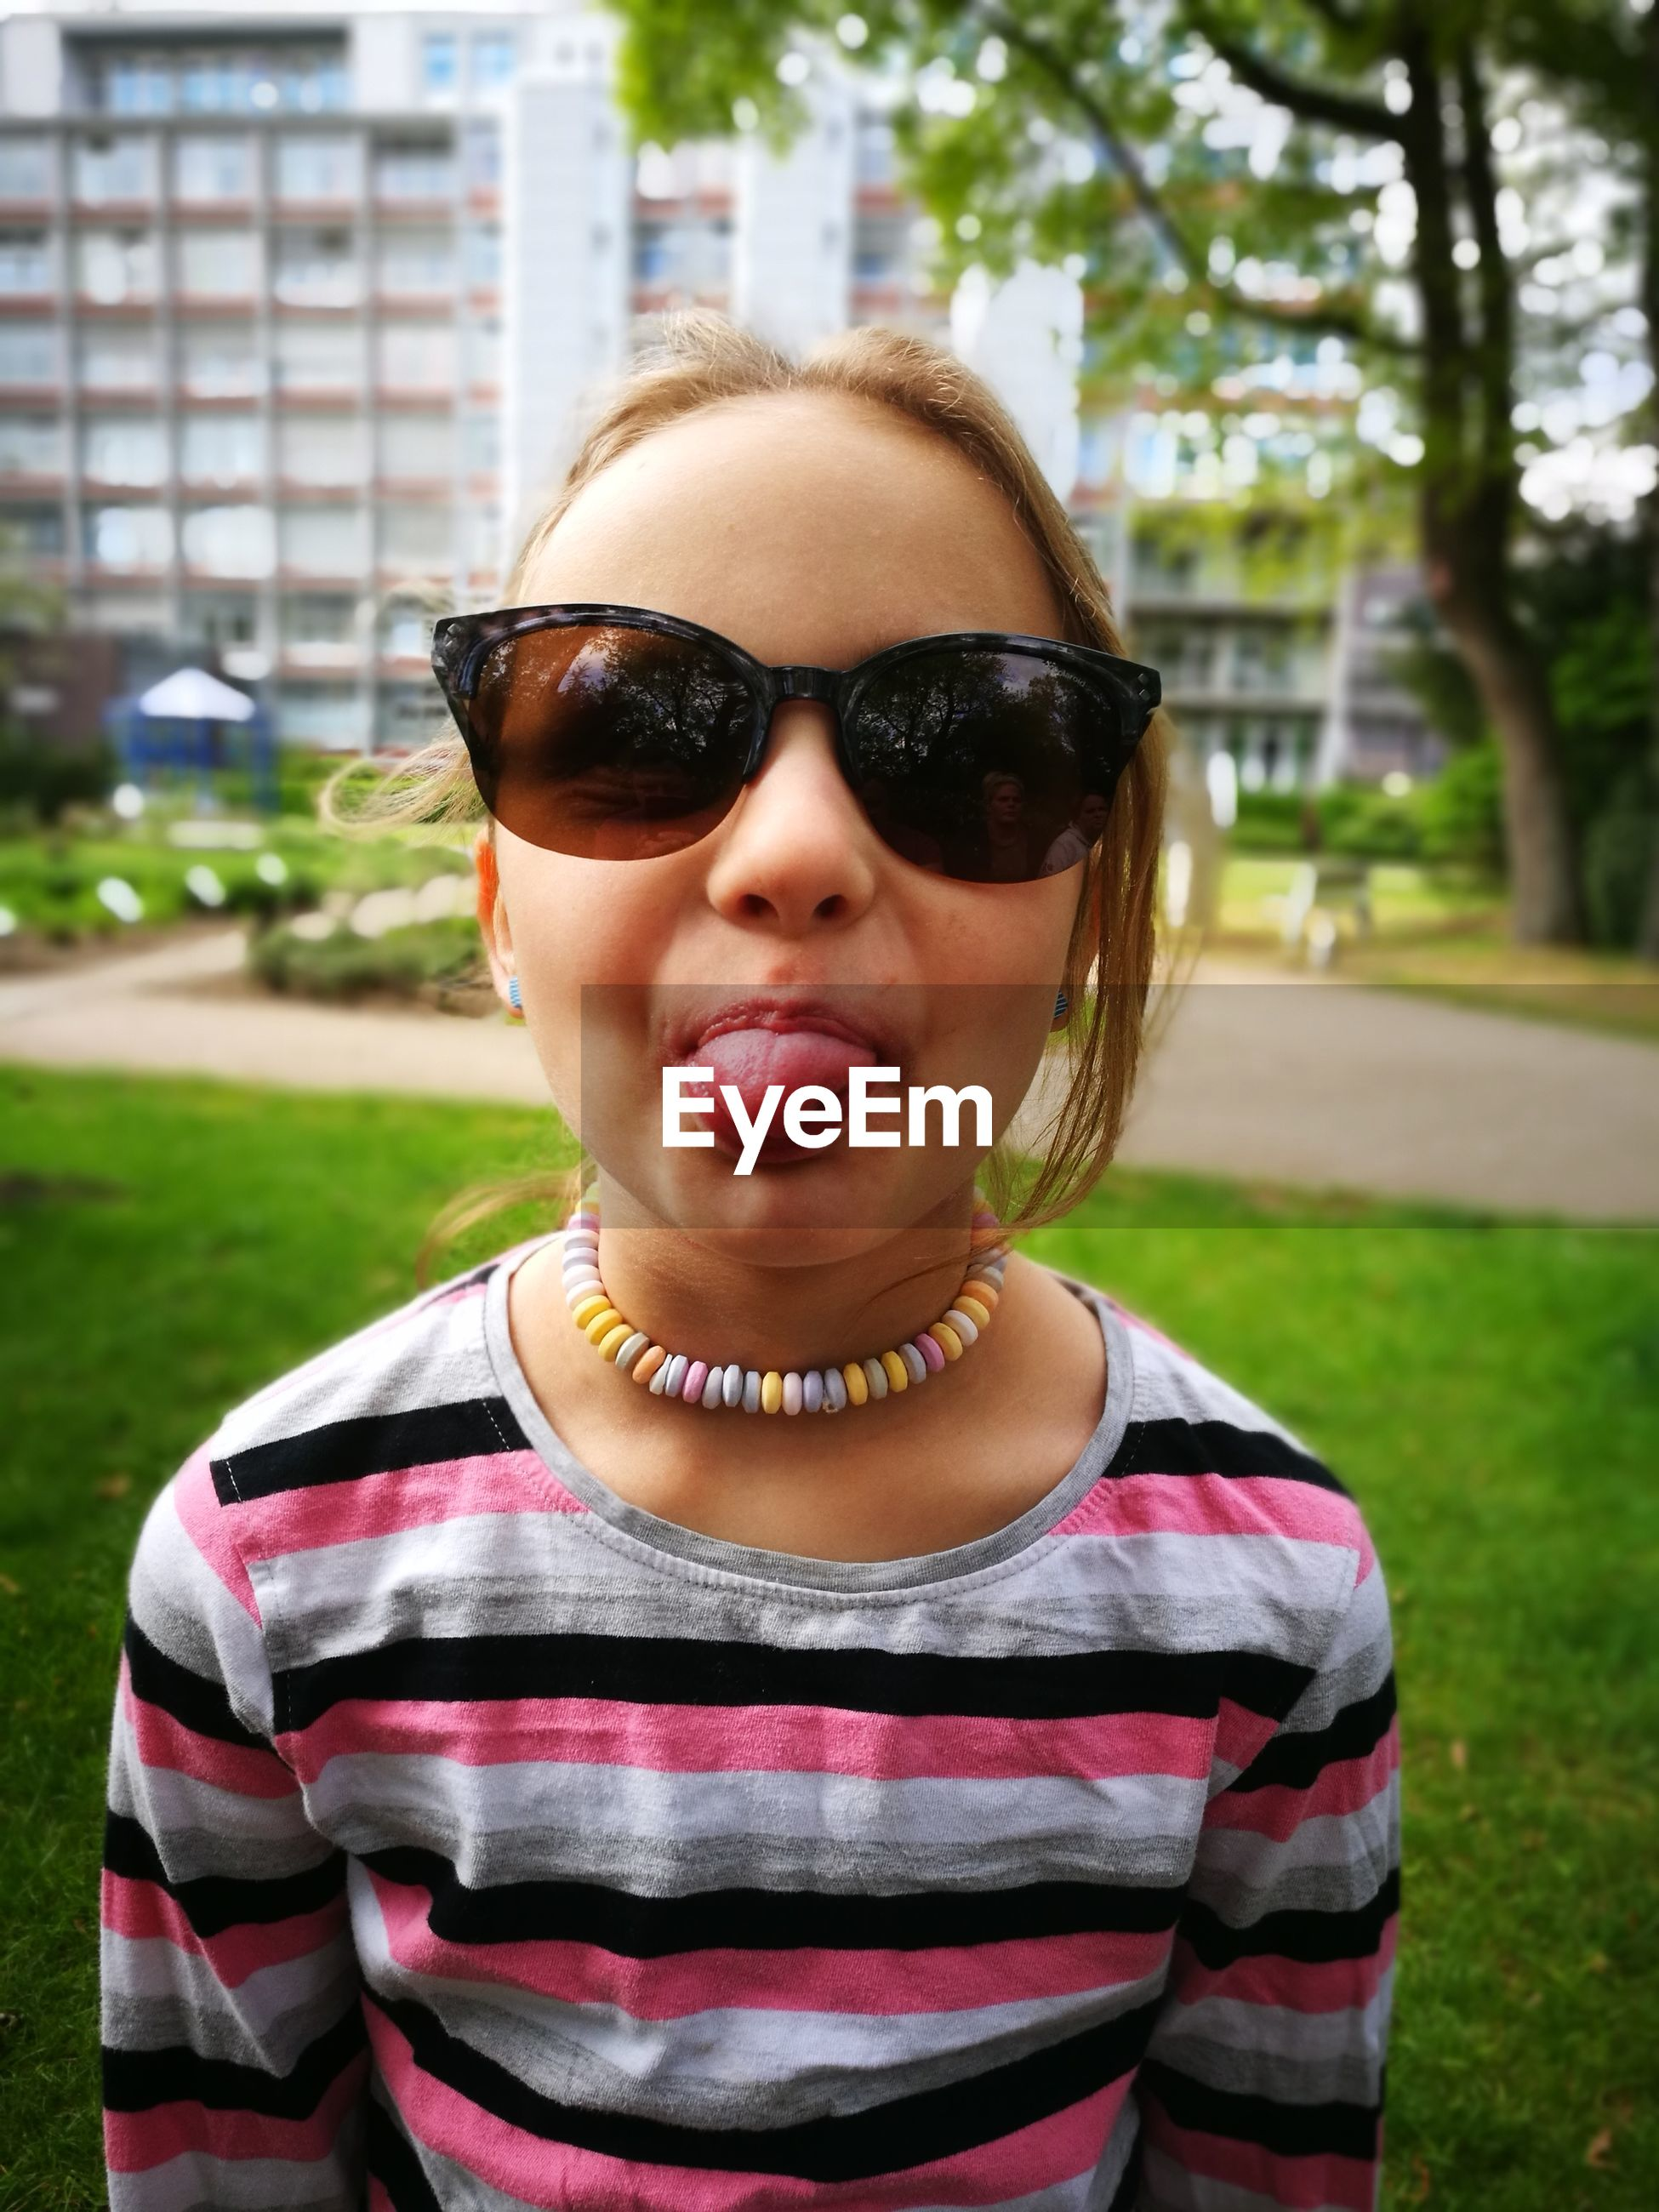 Portrait of girl wearing sunglasses sticking out tongue while standing in park